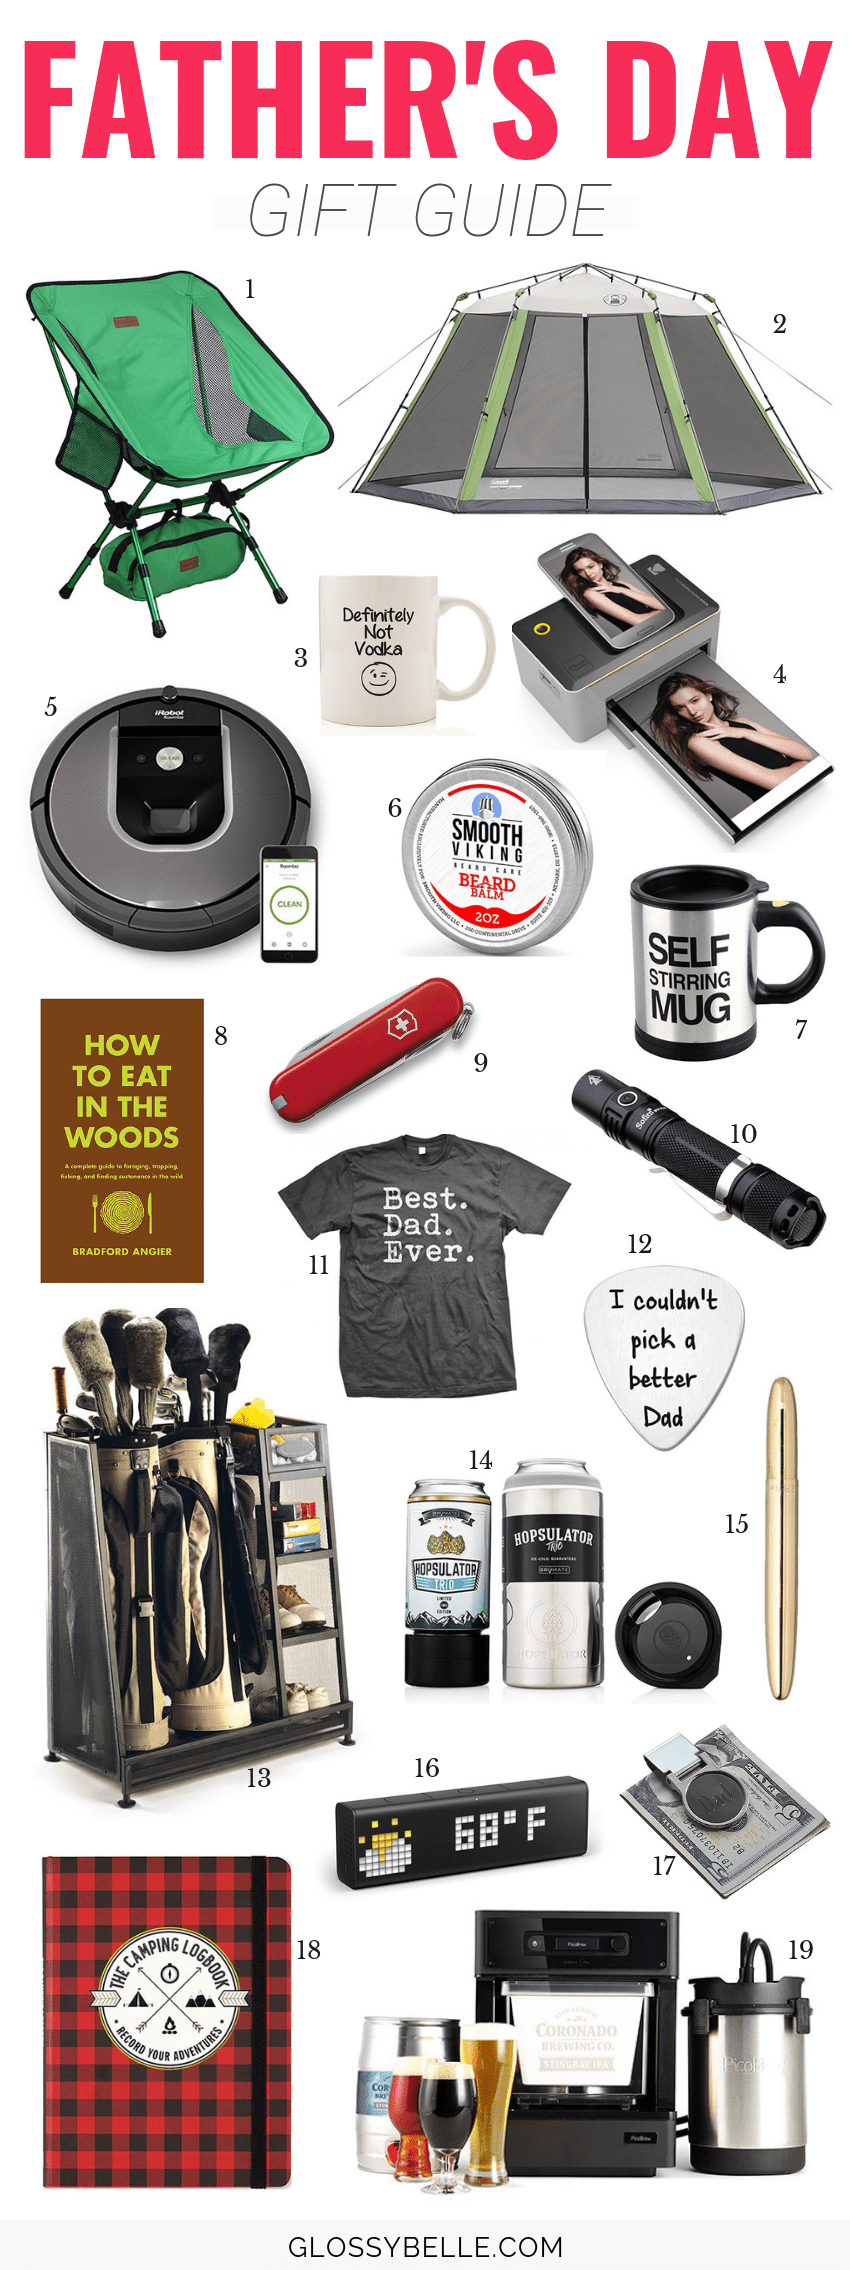 With Father's Day just around the corner, it can be hard to find a gift that your Dad likes and doesn't already have! In this Father's Day gift guide, I list out 25 cool gift ideas you can buy to spoil your Dad on his special day. | father's day gift guide | father's day gifts | presents | gift guide | gifts for dads | holiday gift guide #giftguide #giftideas #giftsforhim #fathersday #dadlife #holidaygifts